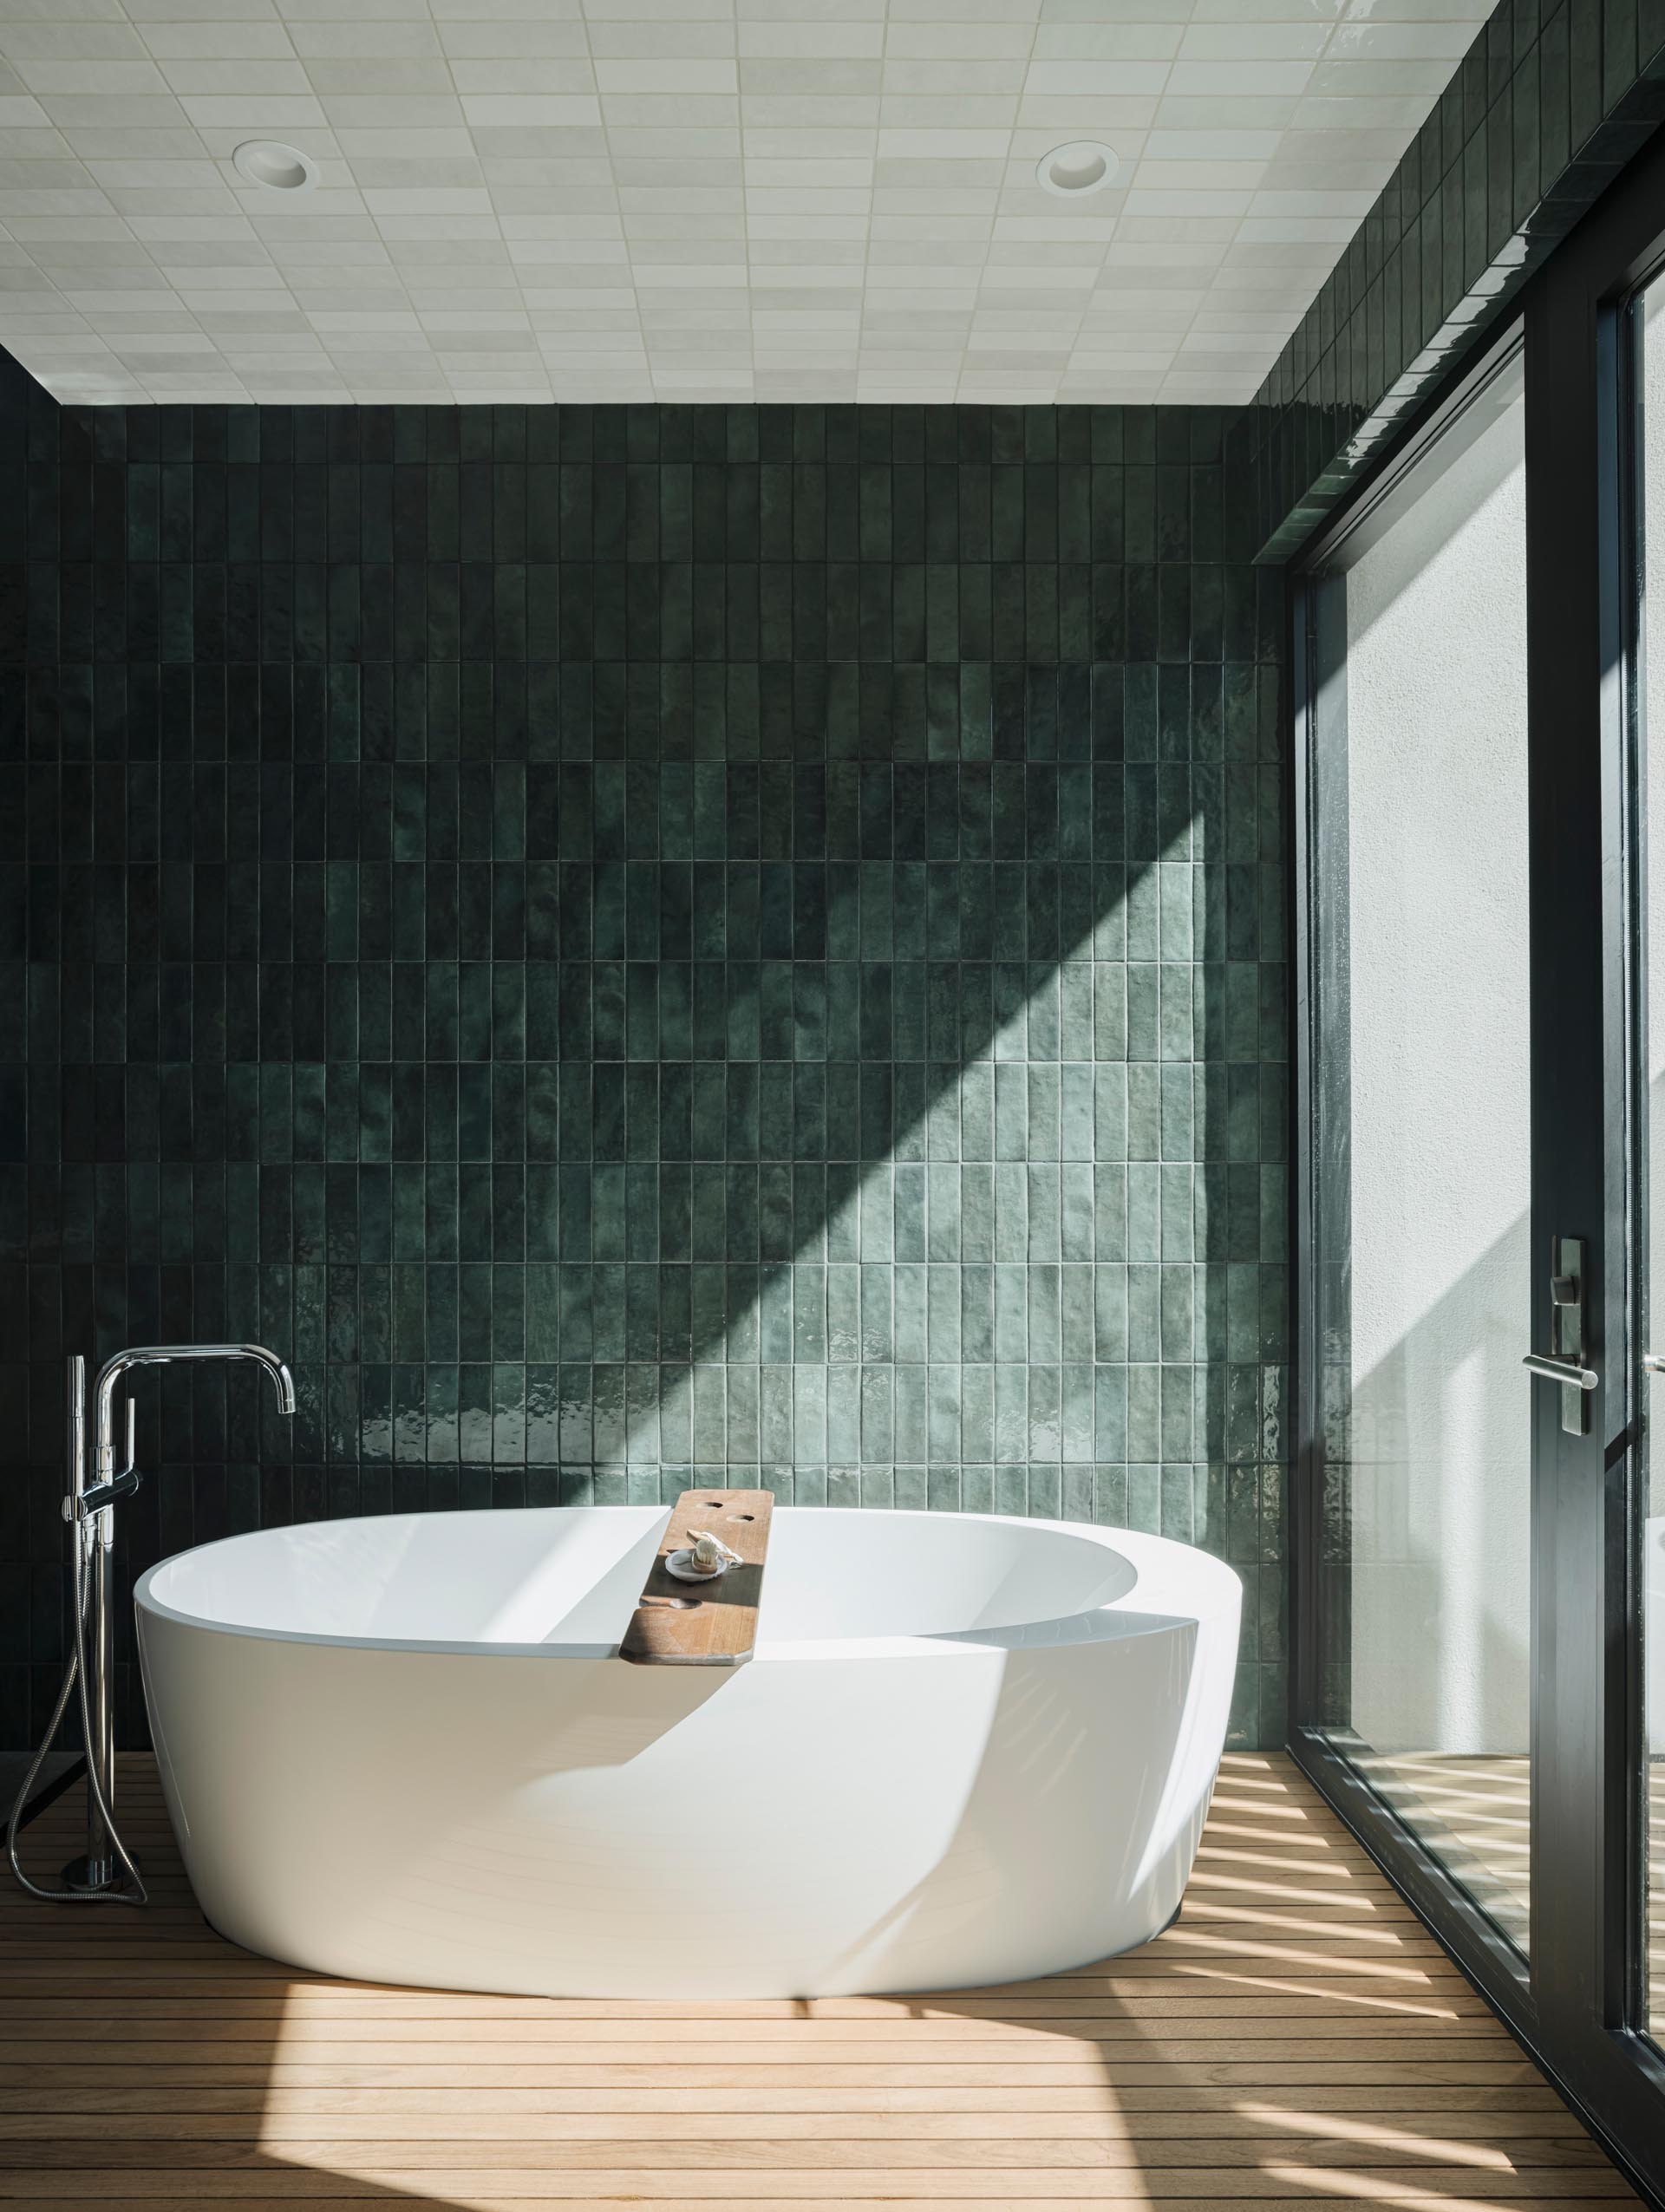 A modern bathroom with a naturally lit shower and bathing area that opens out to an outdoor shower, screened from the nearby neighbor with a custom steel slatted wall. Glazed green wall tiles have been used to create a unique look for the bathroom.